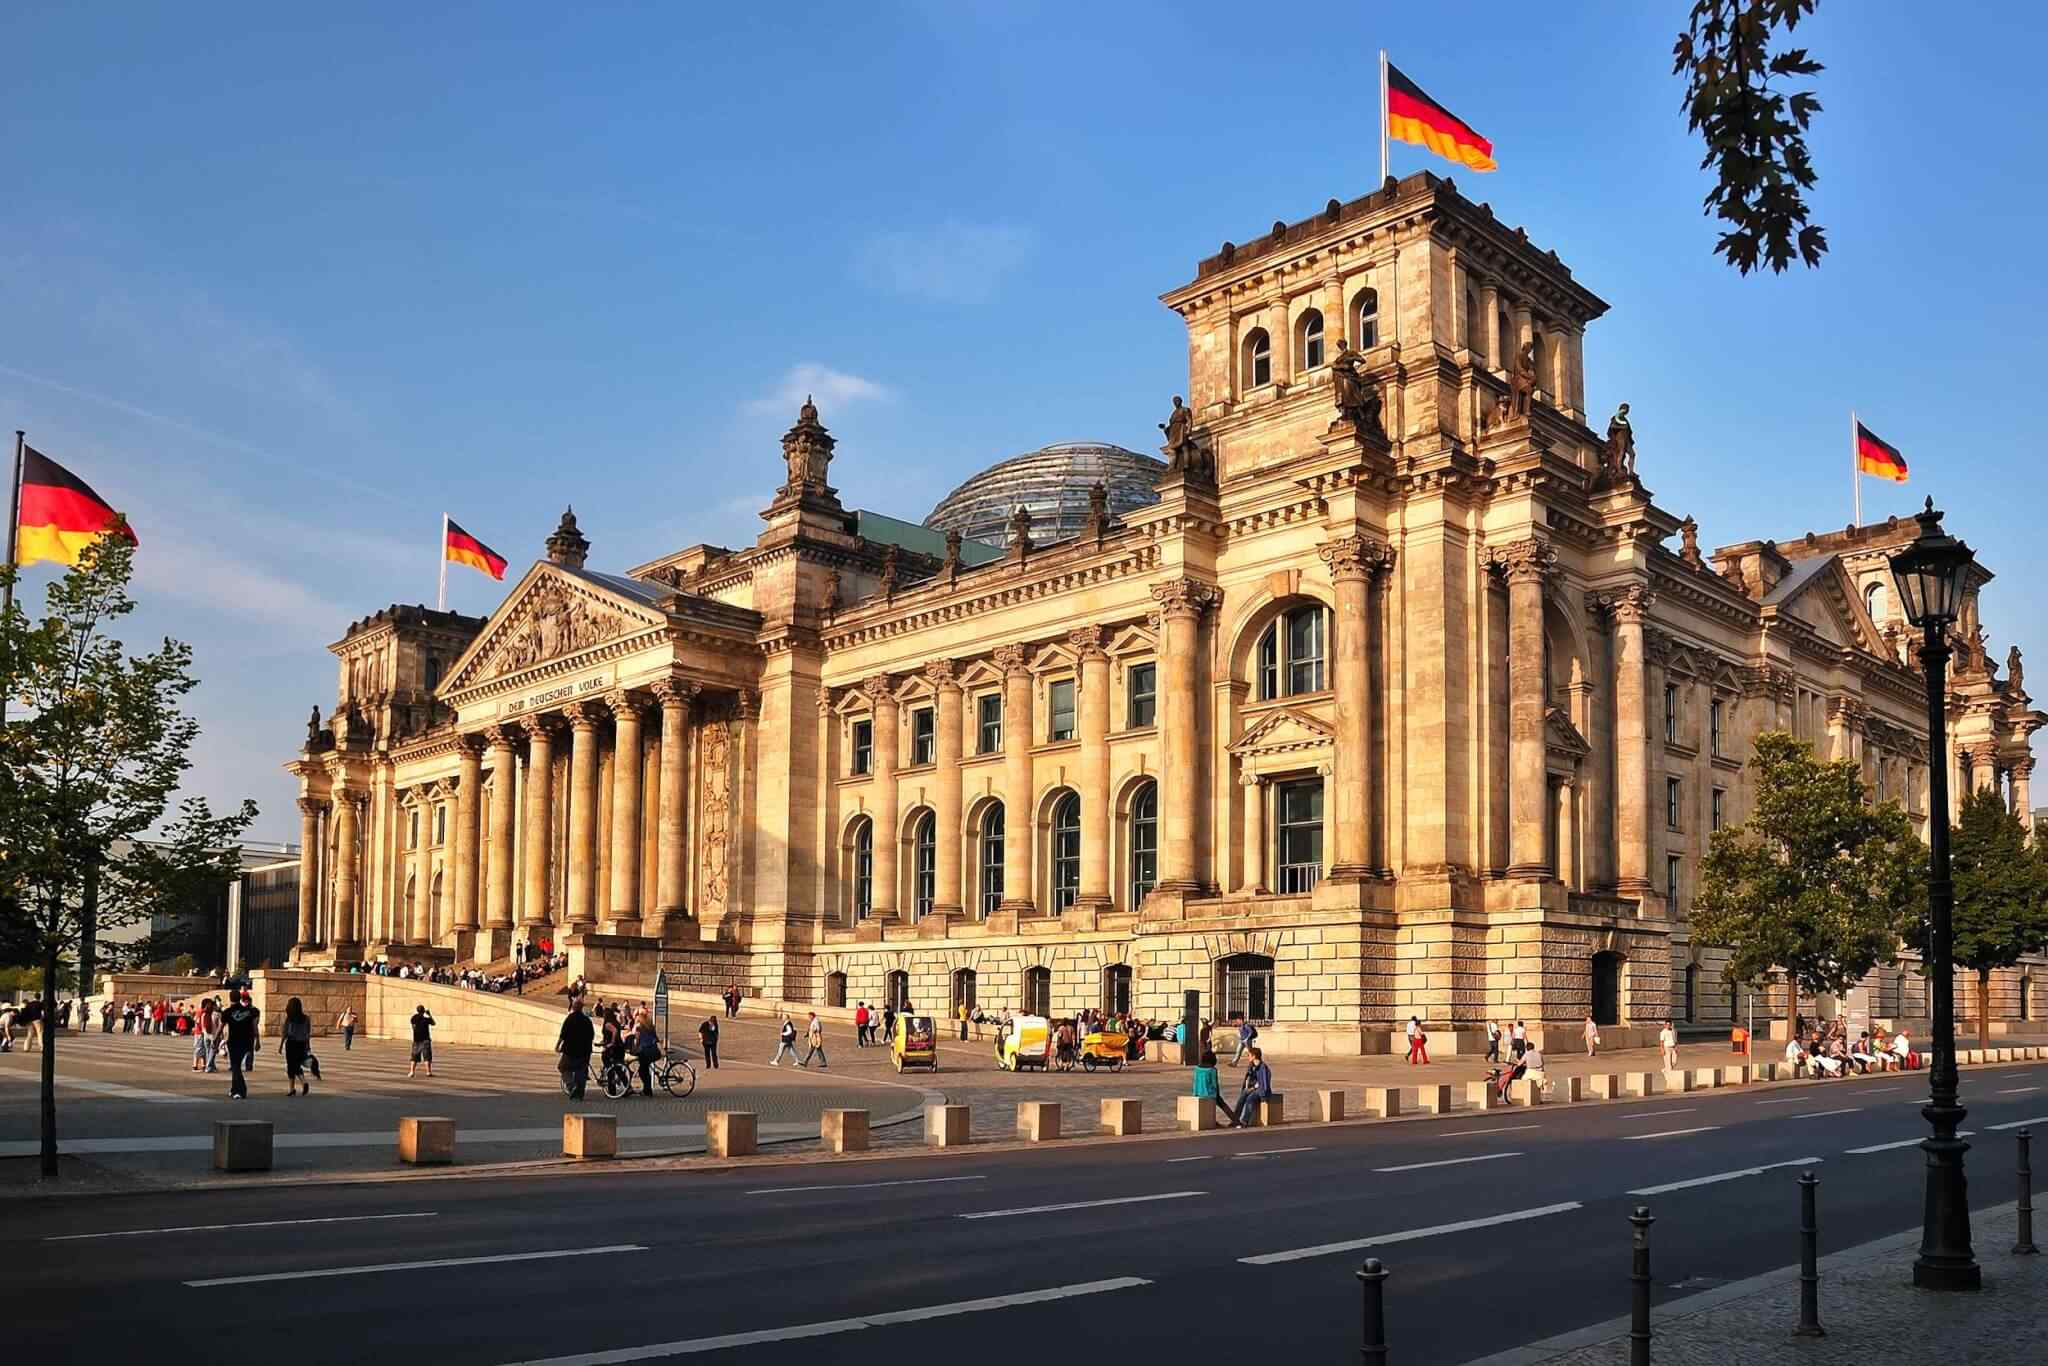 https://www.touripp.it/wp-content/uploads/2018/09/destination-berlin-01.jpg